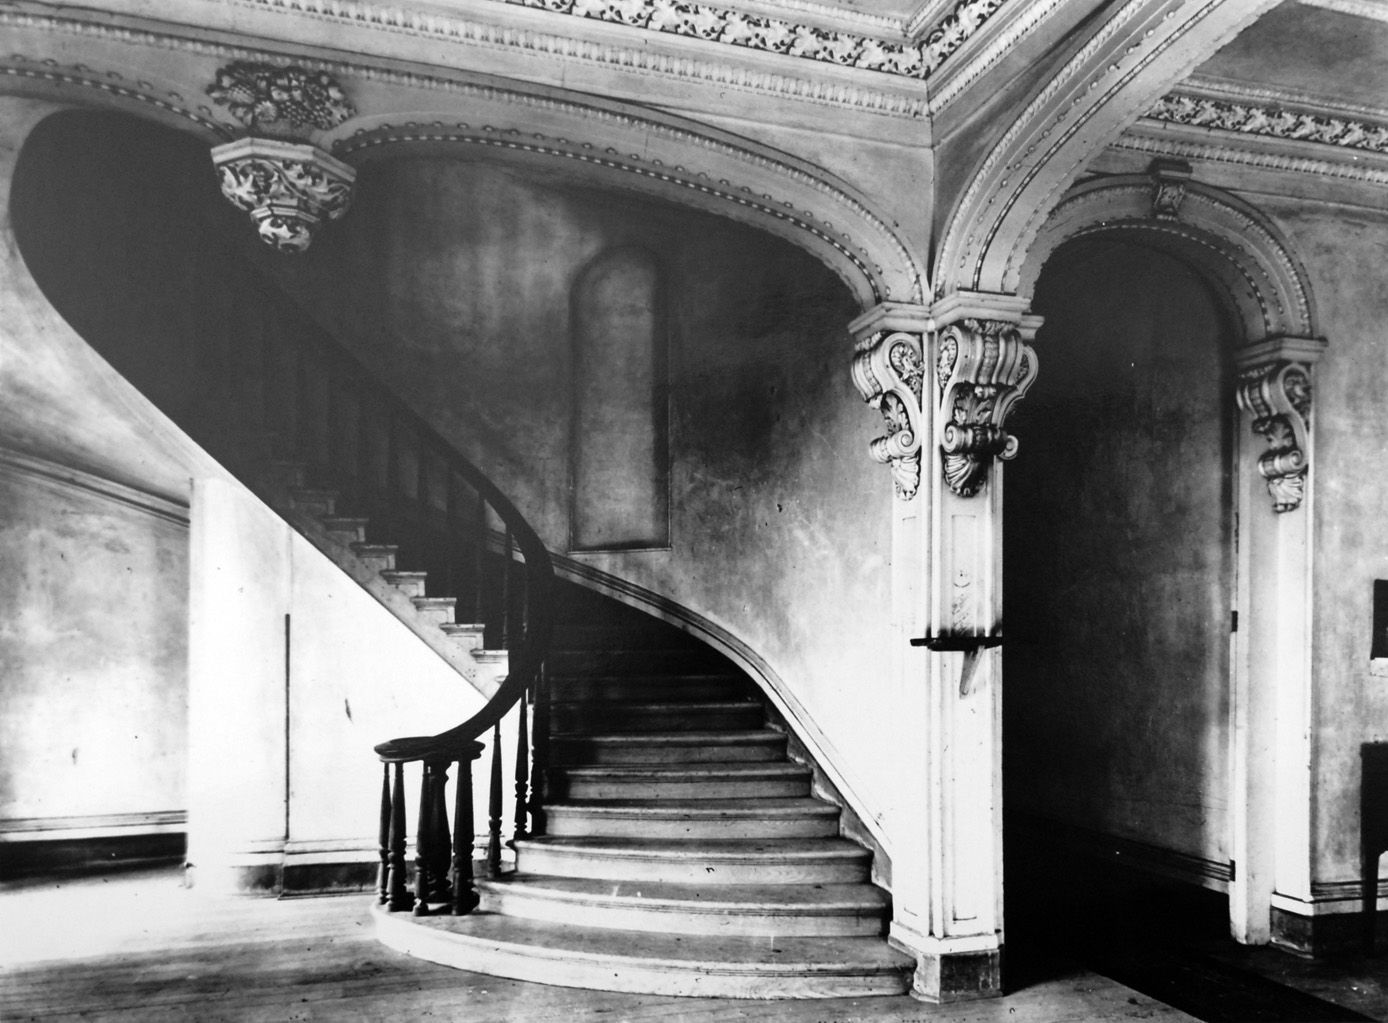 Stairway in Chatsworth Plantation, Baton Rouge, Louisiana